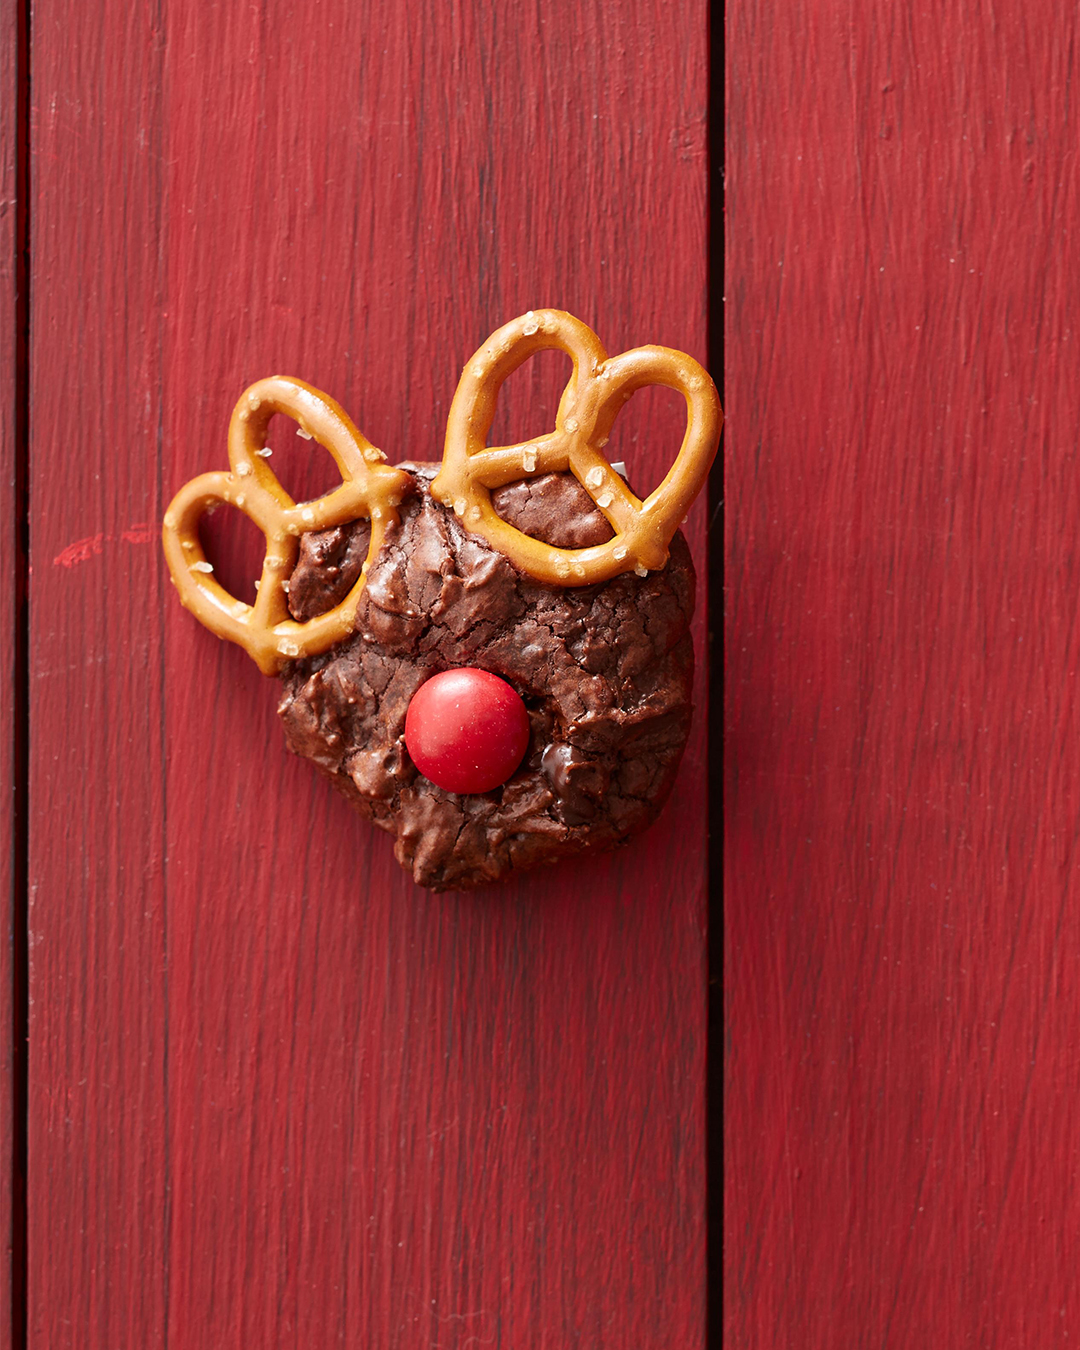 Rudolph Delights brownie with pretzels and m'n'm